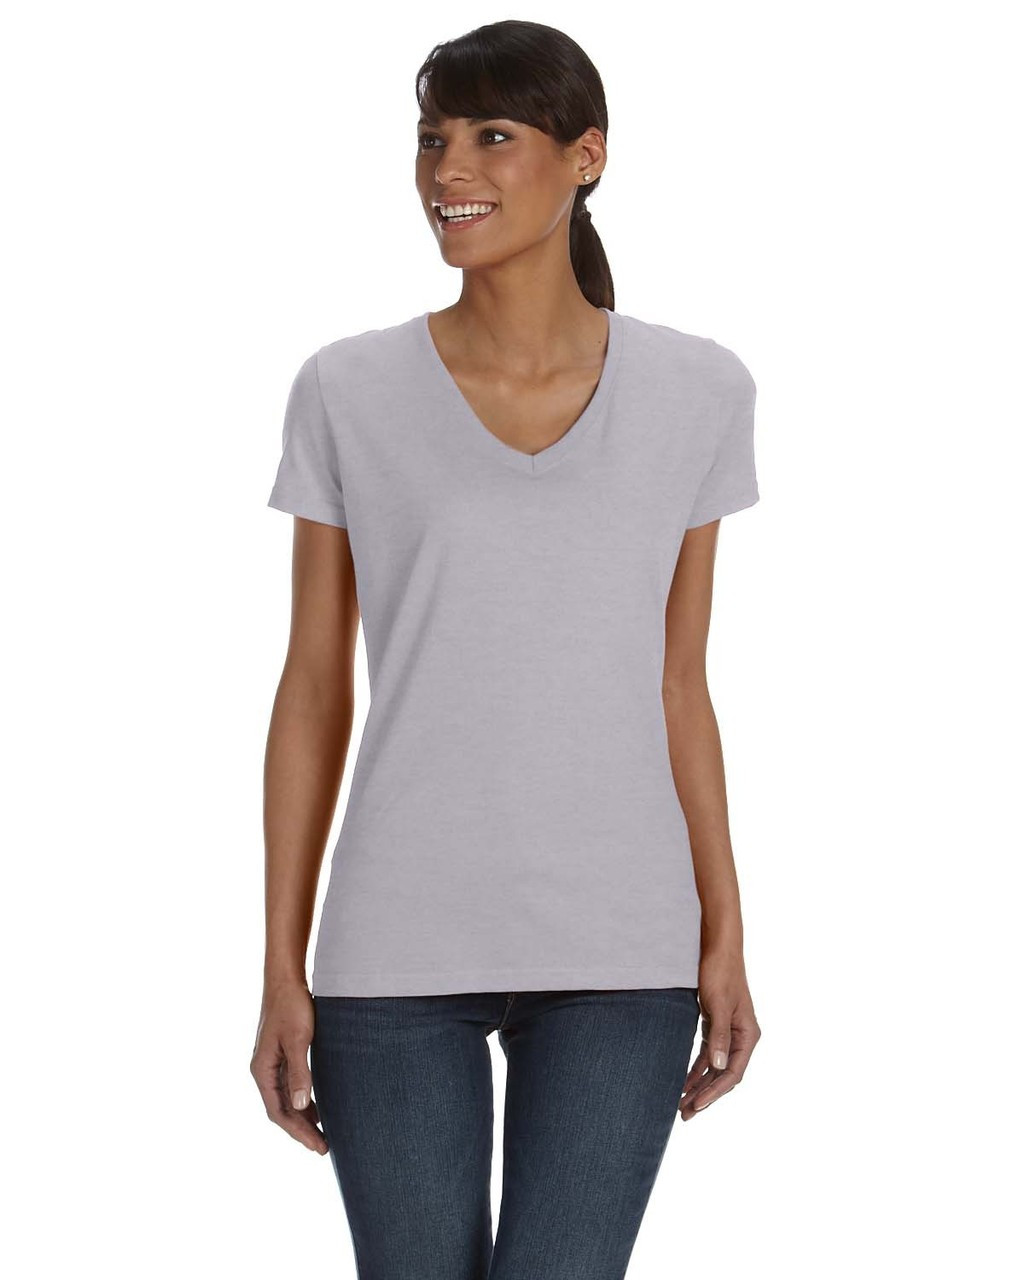 c931ca29 Fruit of the Loom Ladies' Cotton HD® V-Neck T-Shirt   Blankclothing.ca